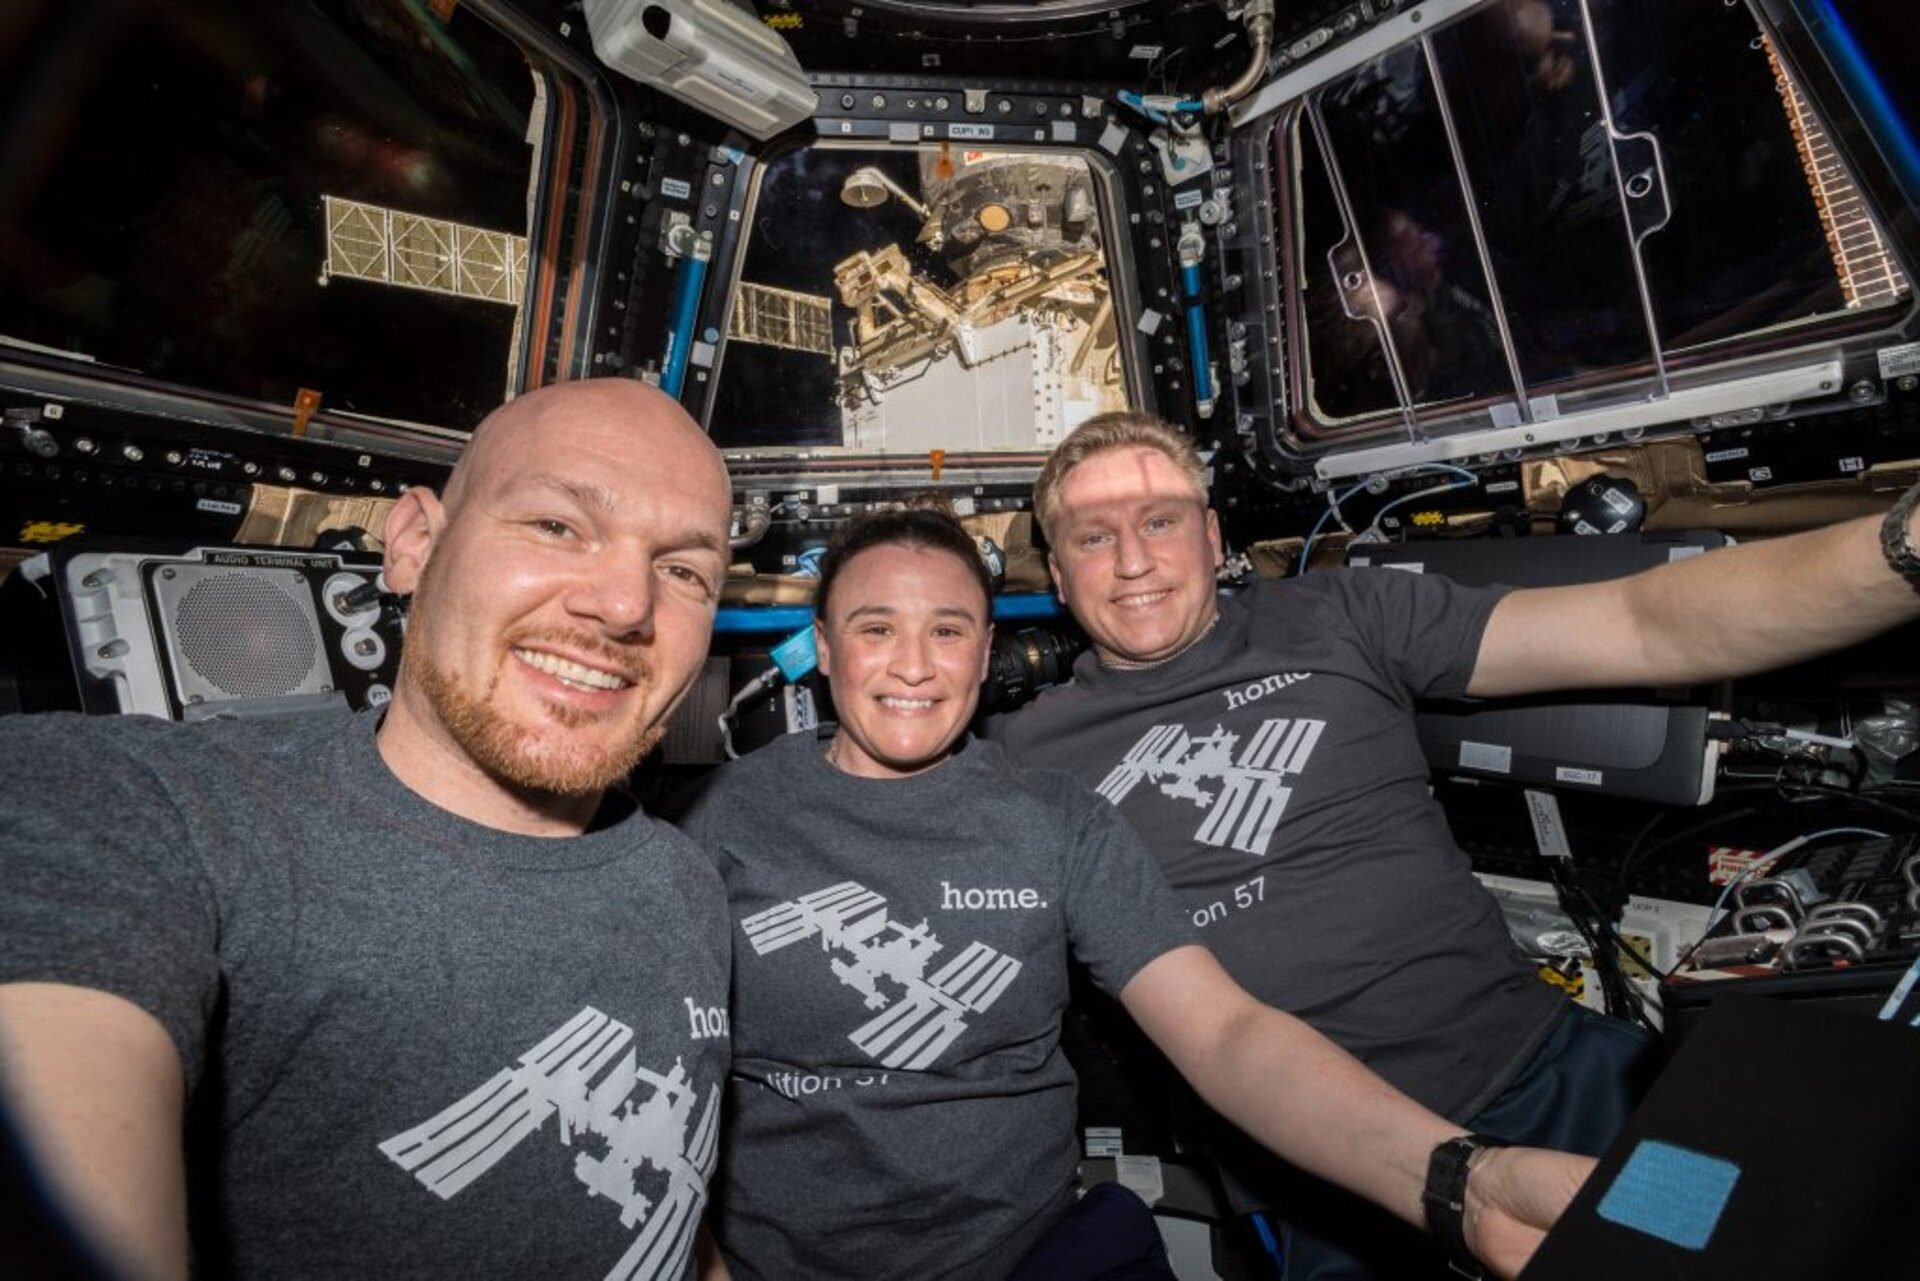 International Space Station crew. Credits: ESA/NASA